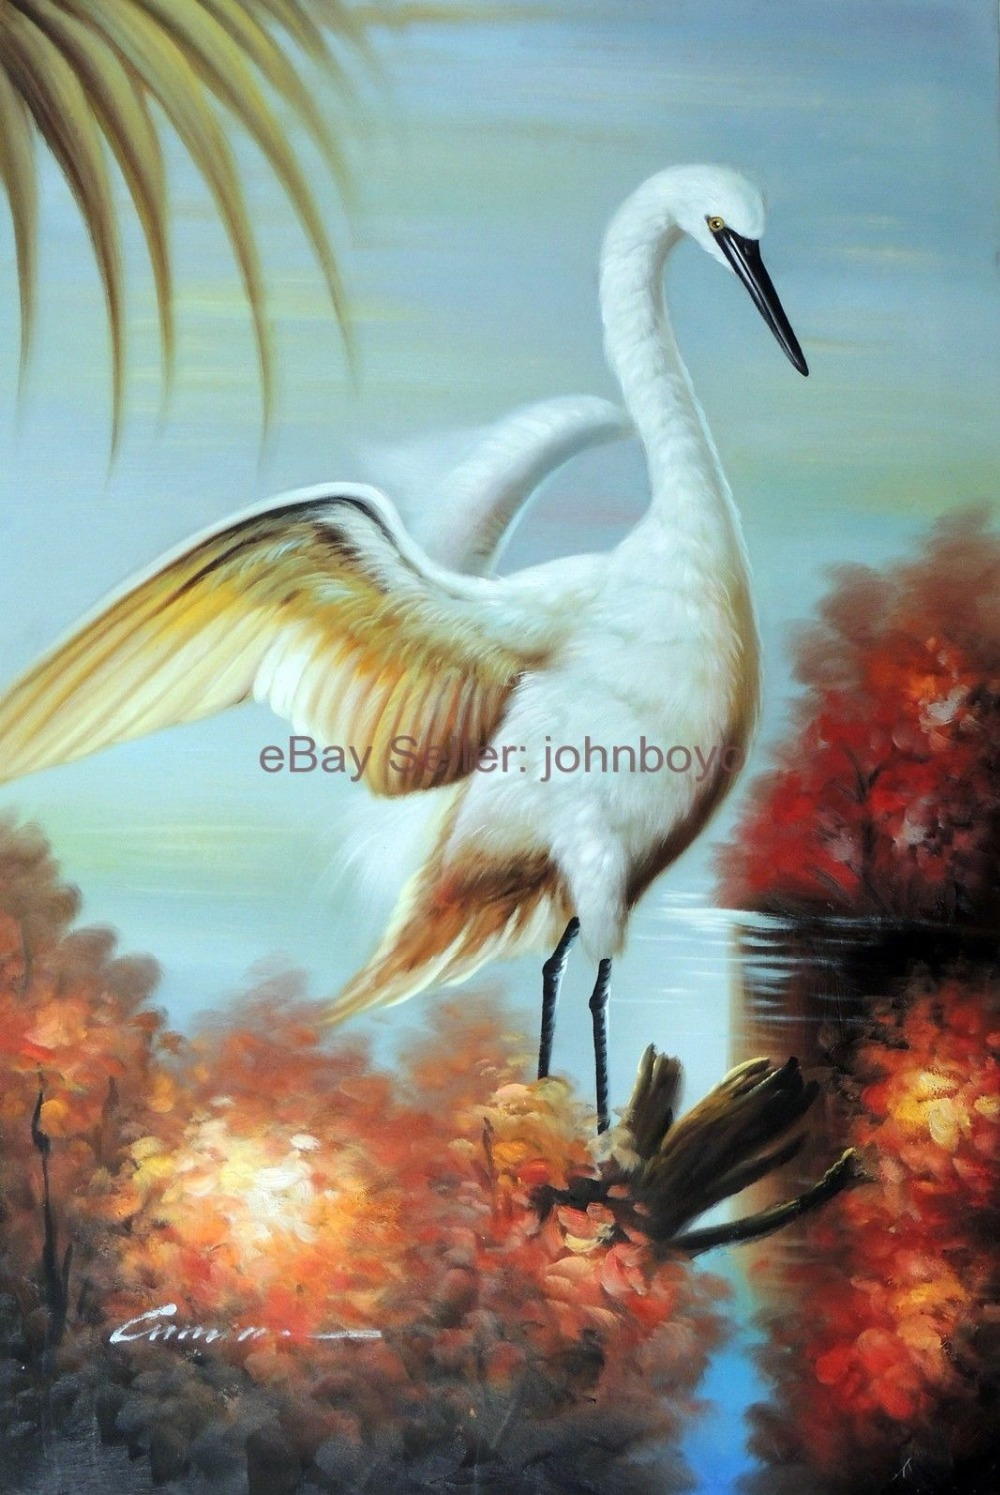 High-quality Hand-painted Animal oil painting Modern on canvas(Unframed) Great White Heron Egret Bird Florida Everglades 24x36(China (Mainland))